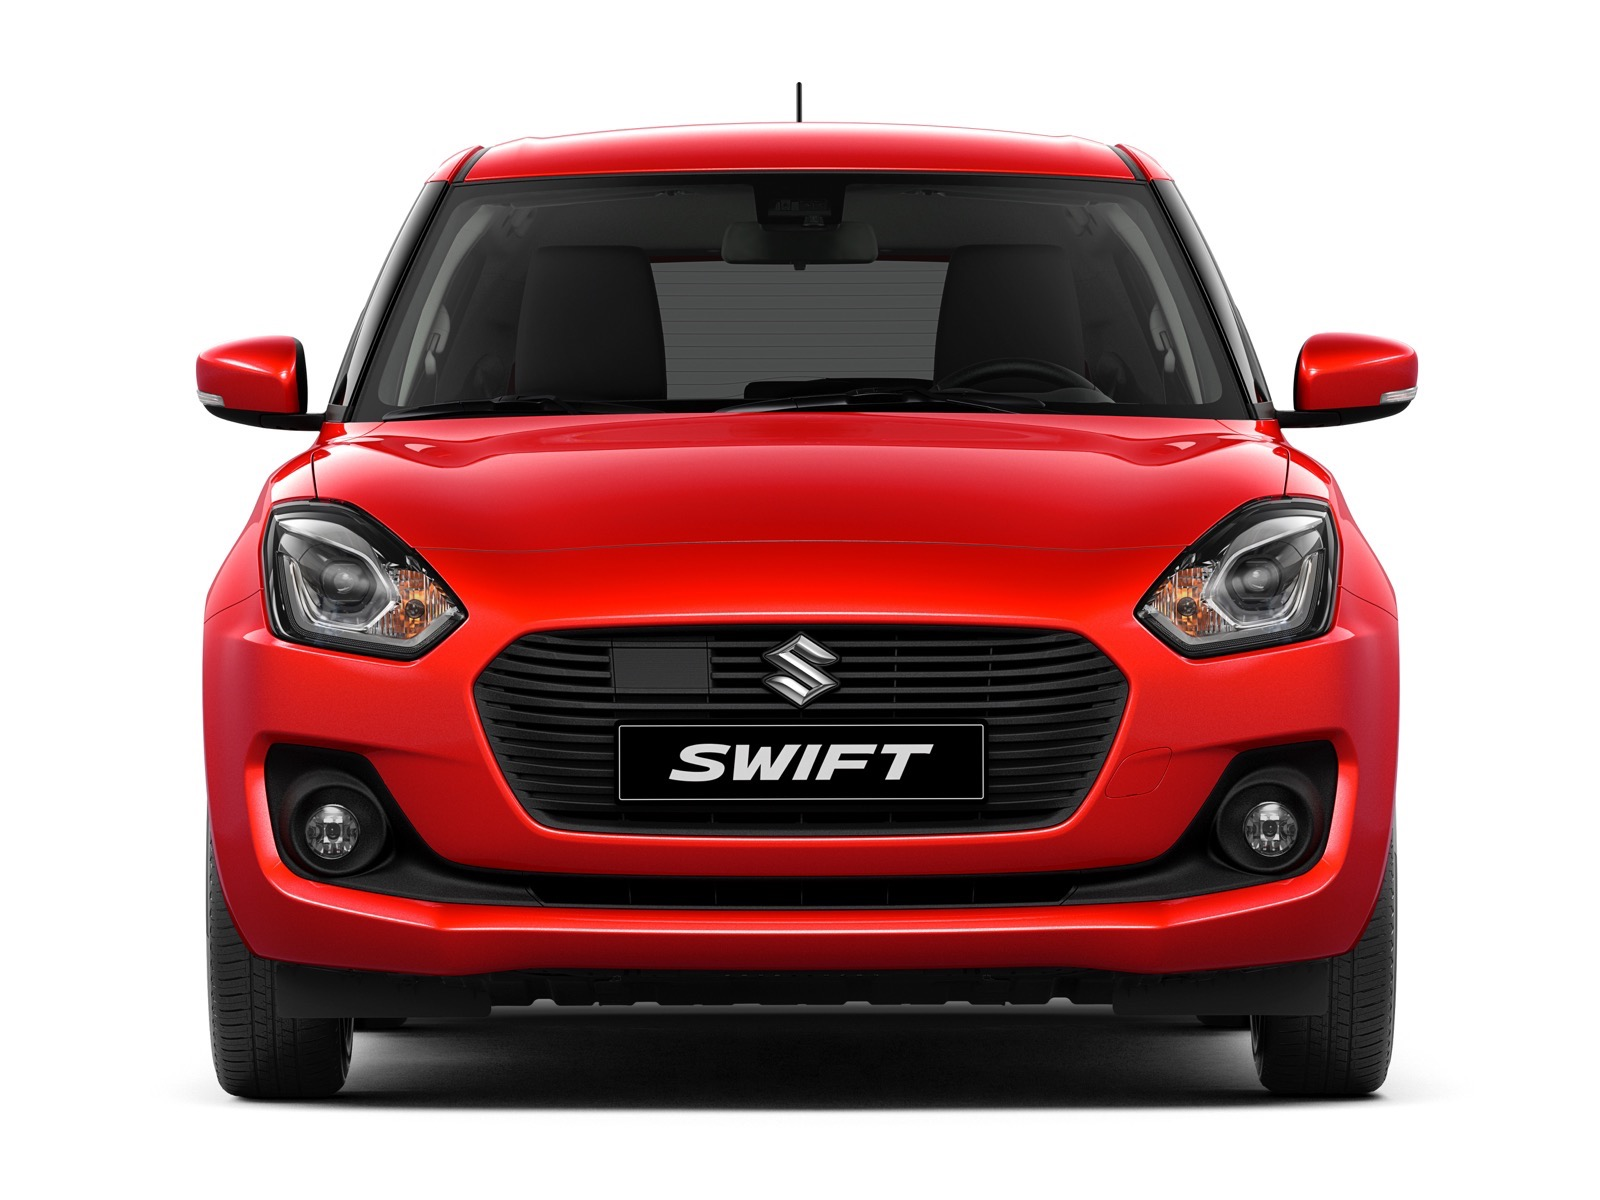 Suzuki_Swift_greek_presentation_68